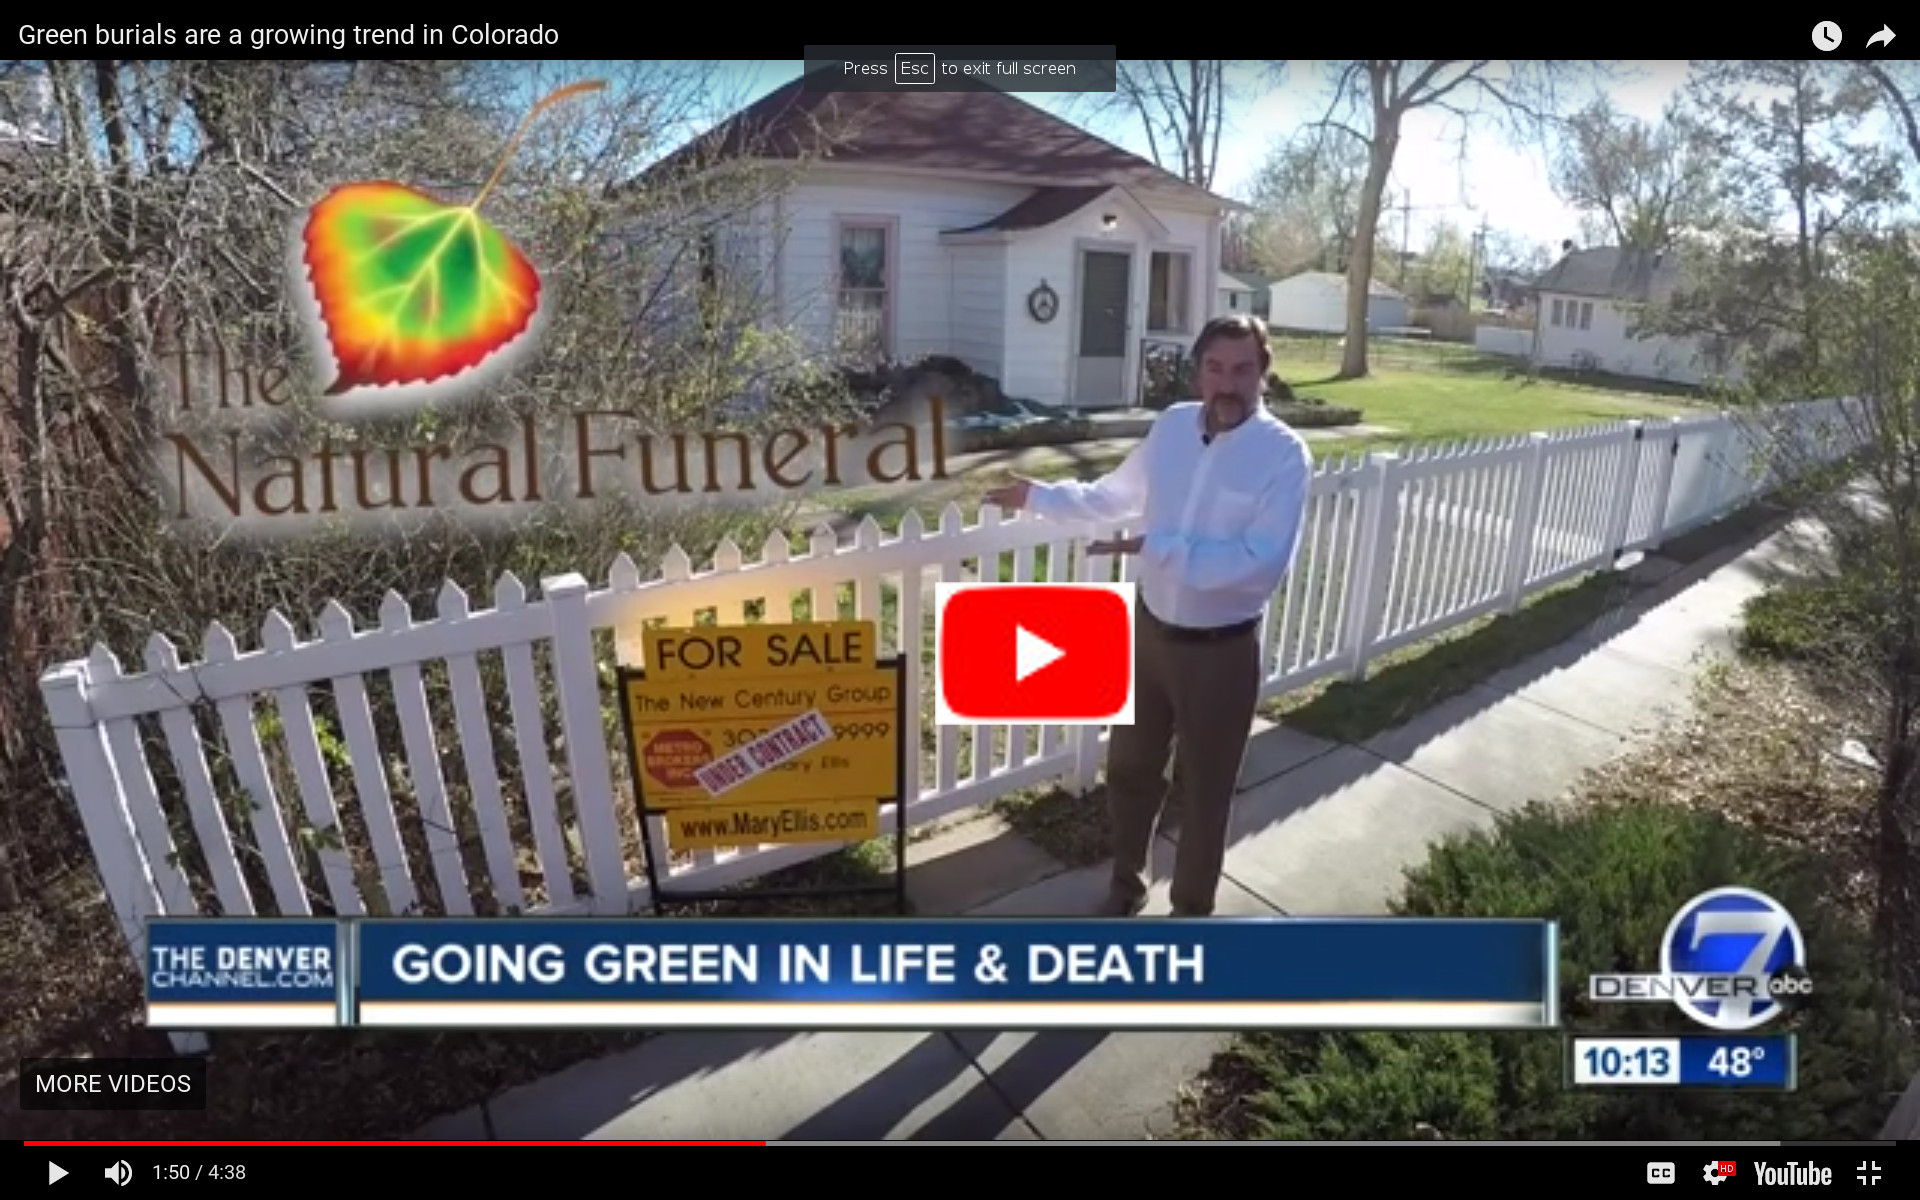 The Natural Funeral Video Link